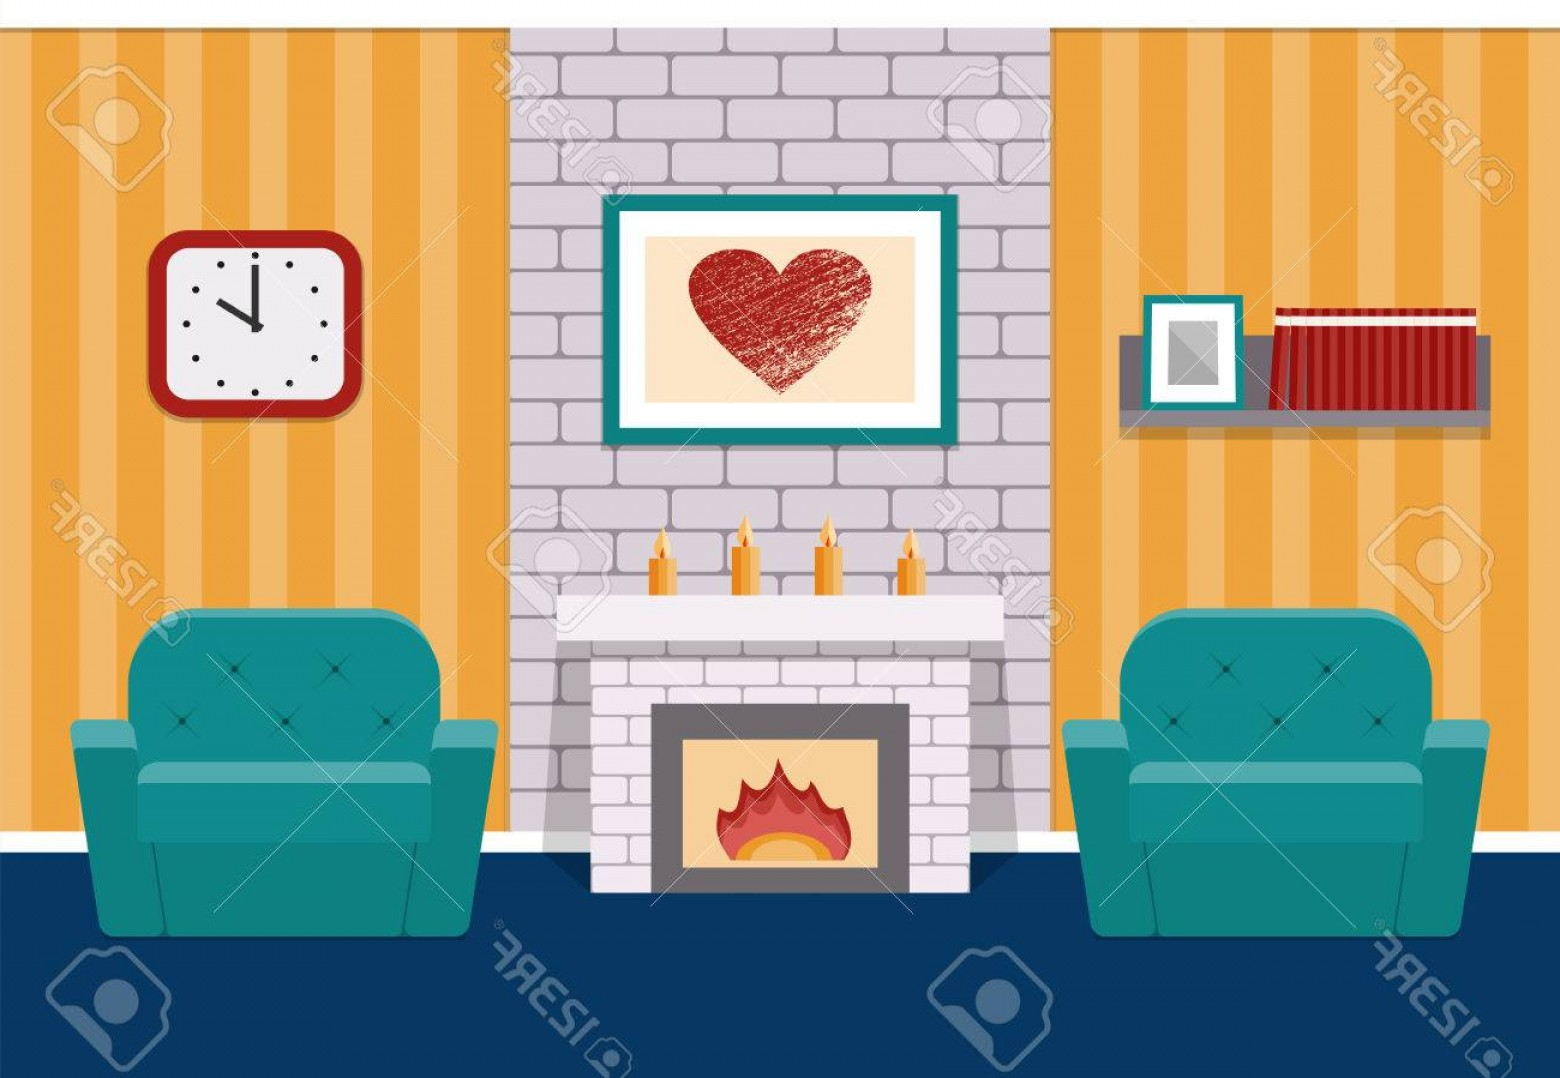 Vector Background For Living Room: Photostock Vector Living Room Interior In Flat Design With Fireplace And Armchairs Vector Background Cartoon Lounge Wi